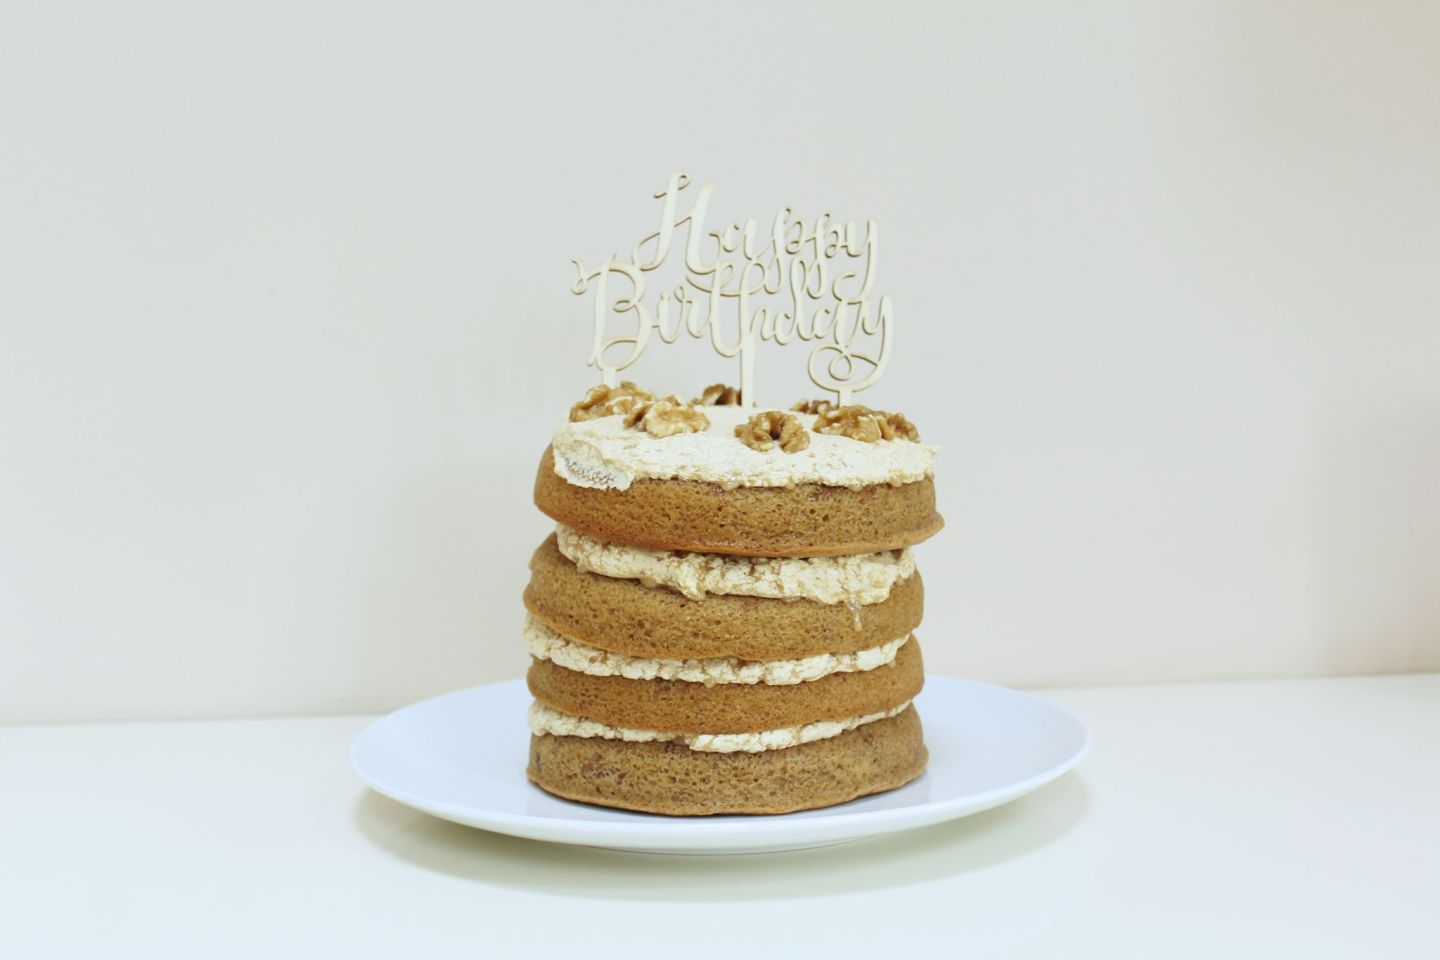 Remarkable Recipe Coffee Walnut Birthday Cake Food Freya Wilcox Funny Birthday Cards Online Elaedamsfinfo